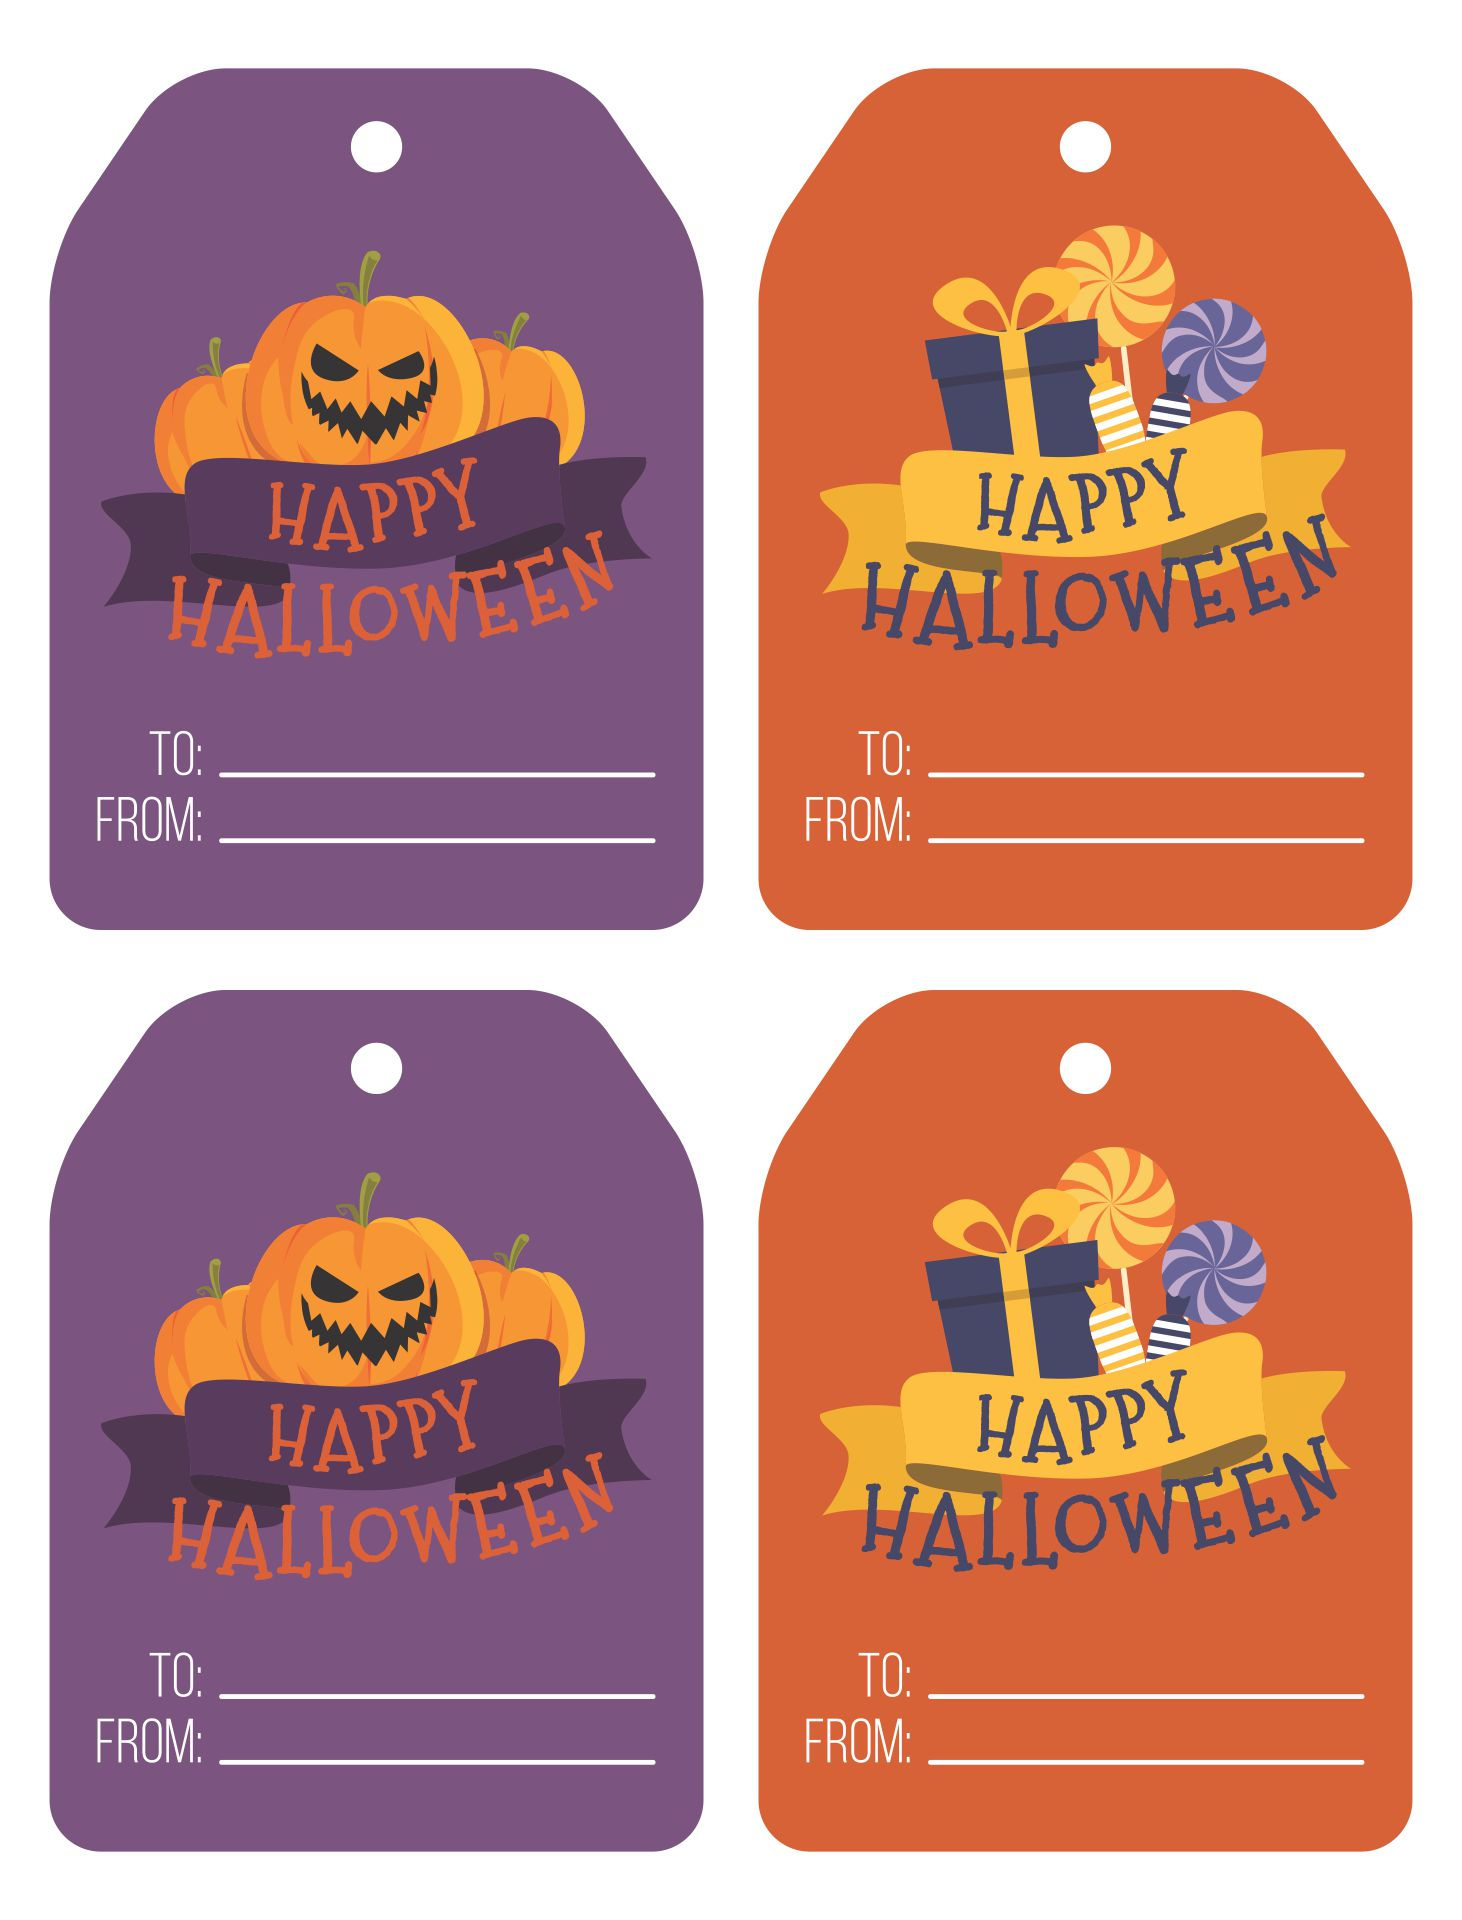 Candy-Free Halloween Gifts And Favor Ideas